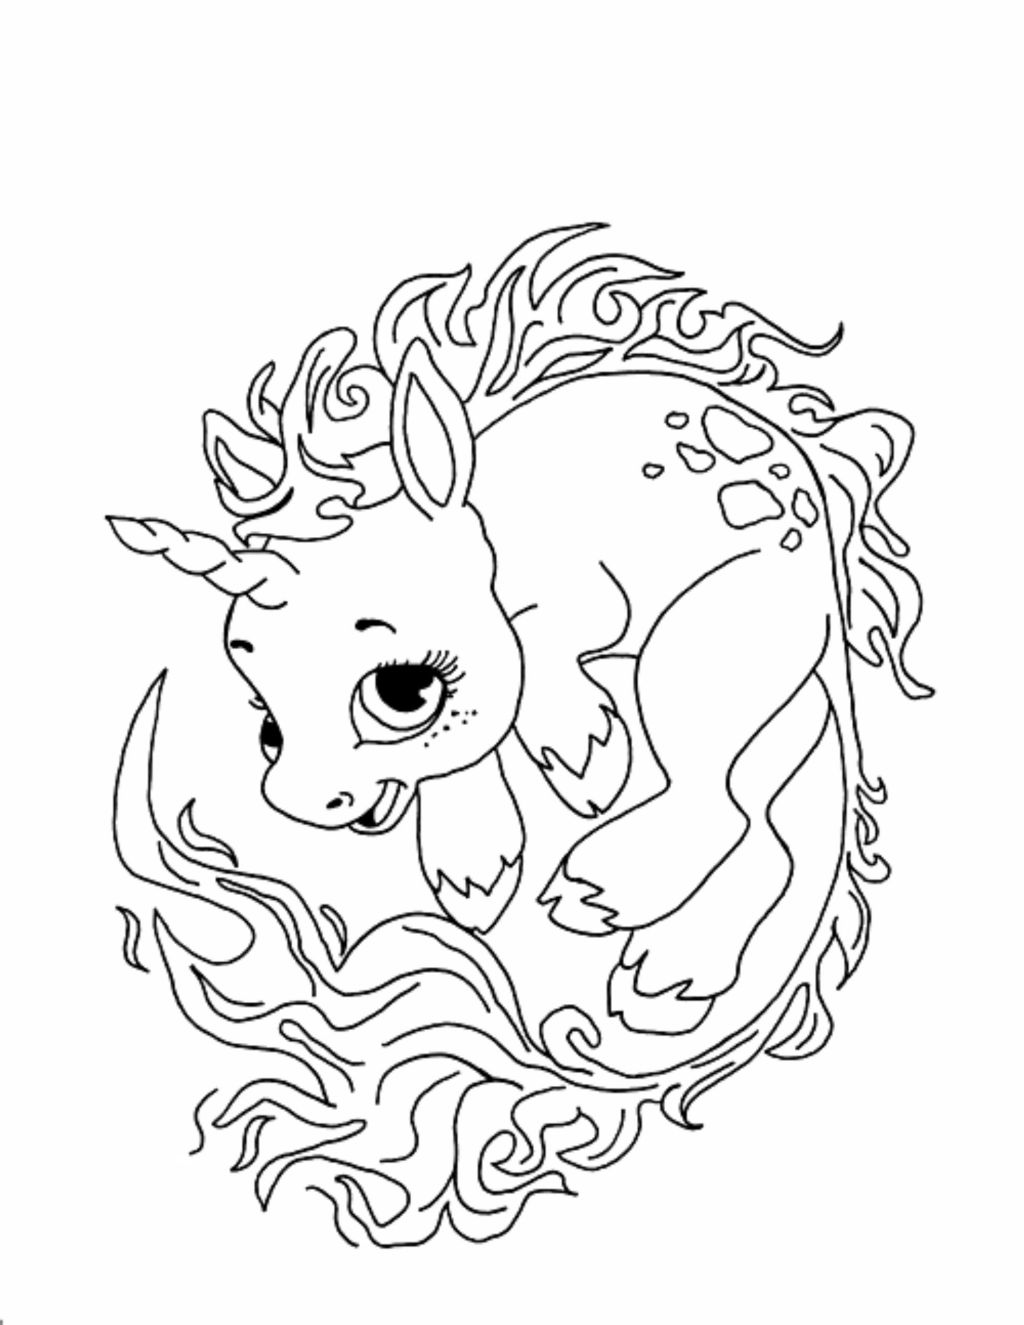 Cute Unicorn Coloring Pages at GetDrawings | Free download